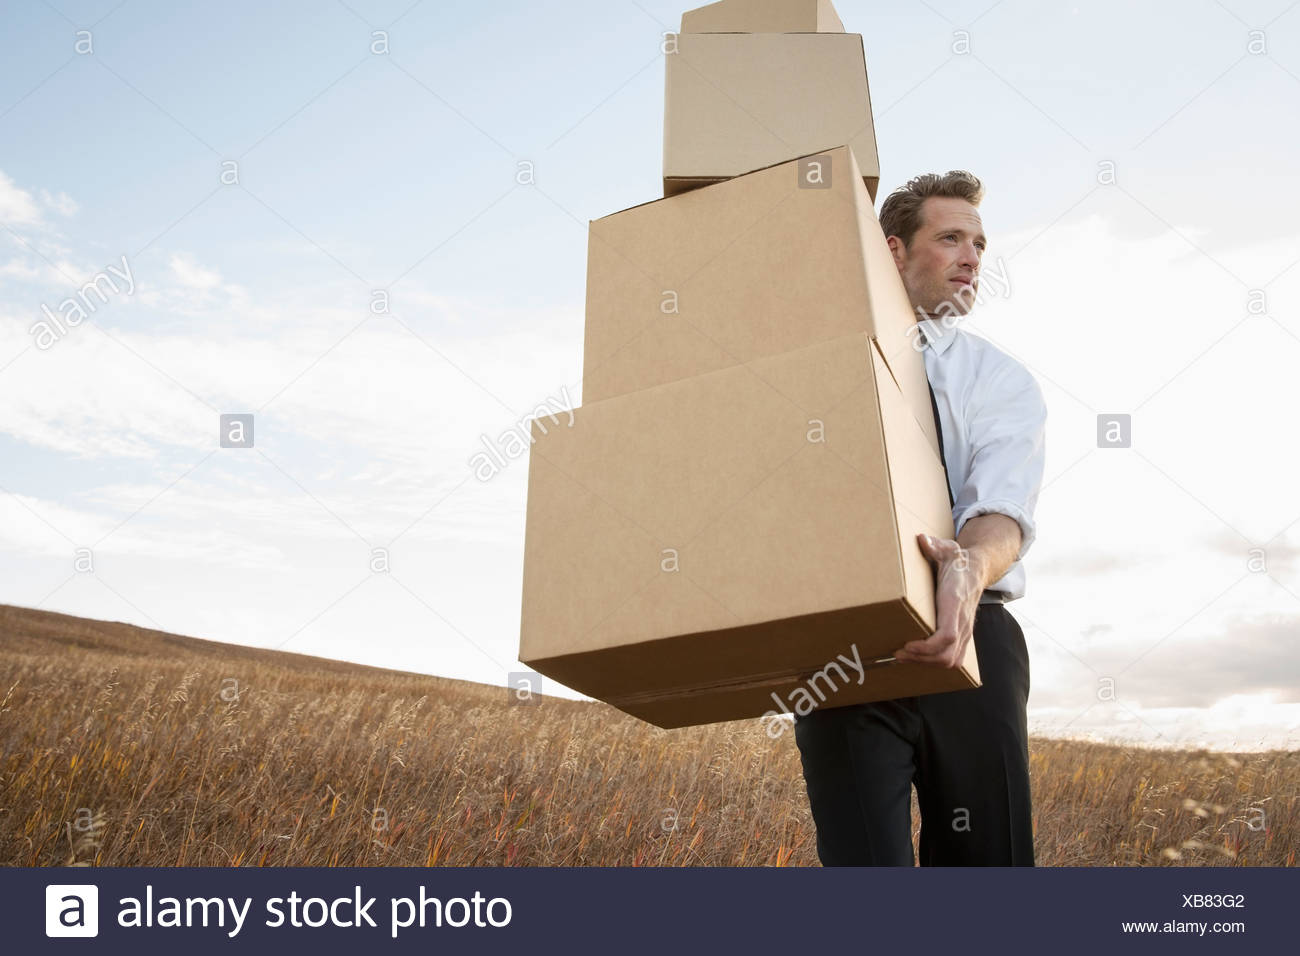 Businessman carrying stacked boxes on field - Stock Image